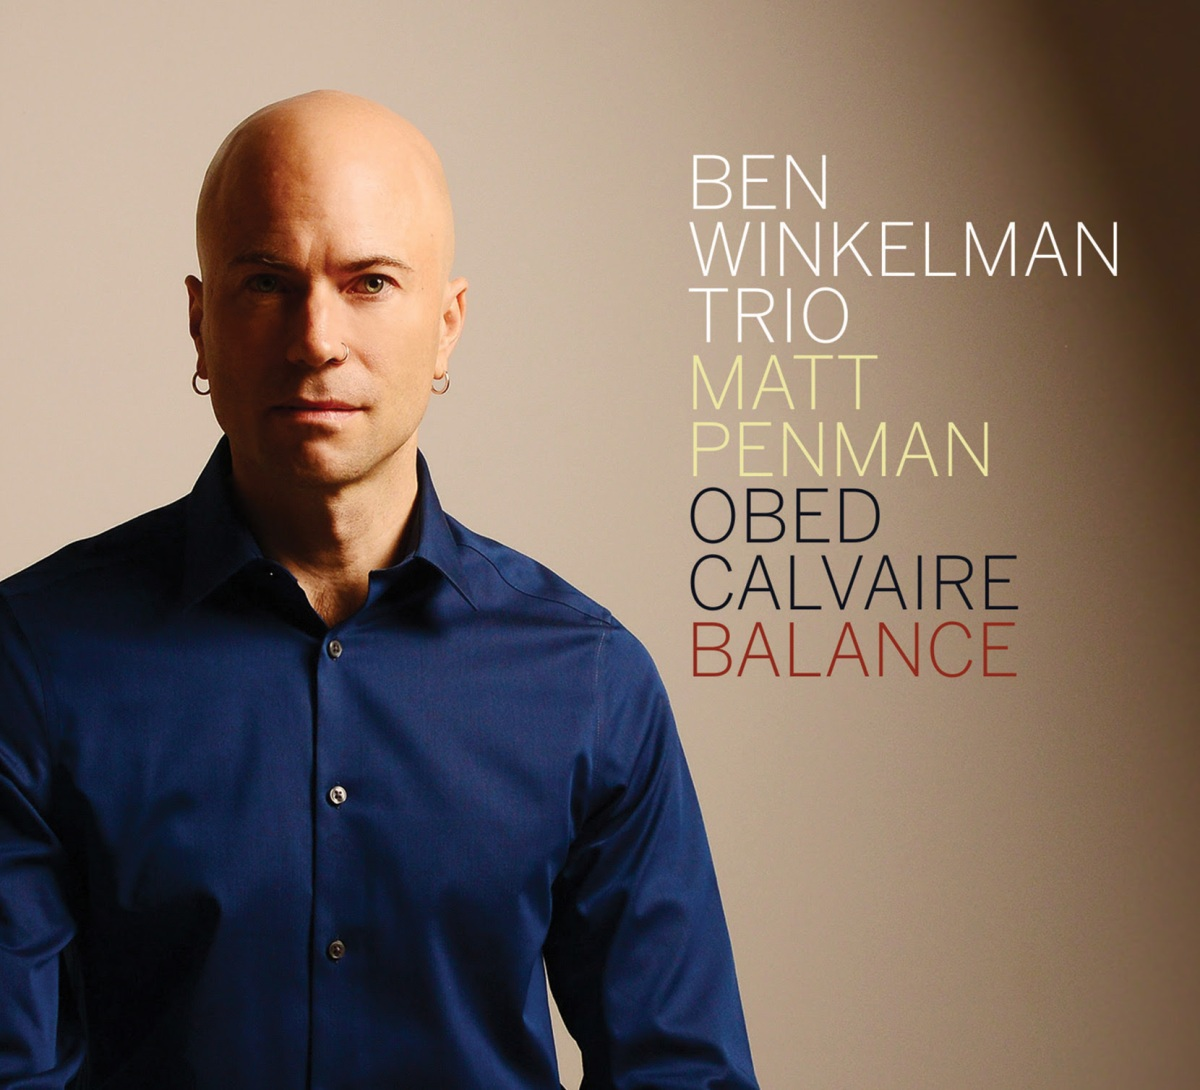 Rick Keene Music Scene – Ben Winkelman 'Balances' Latin Rhythms to Jazz On Latest Release